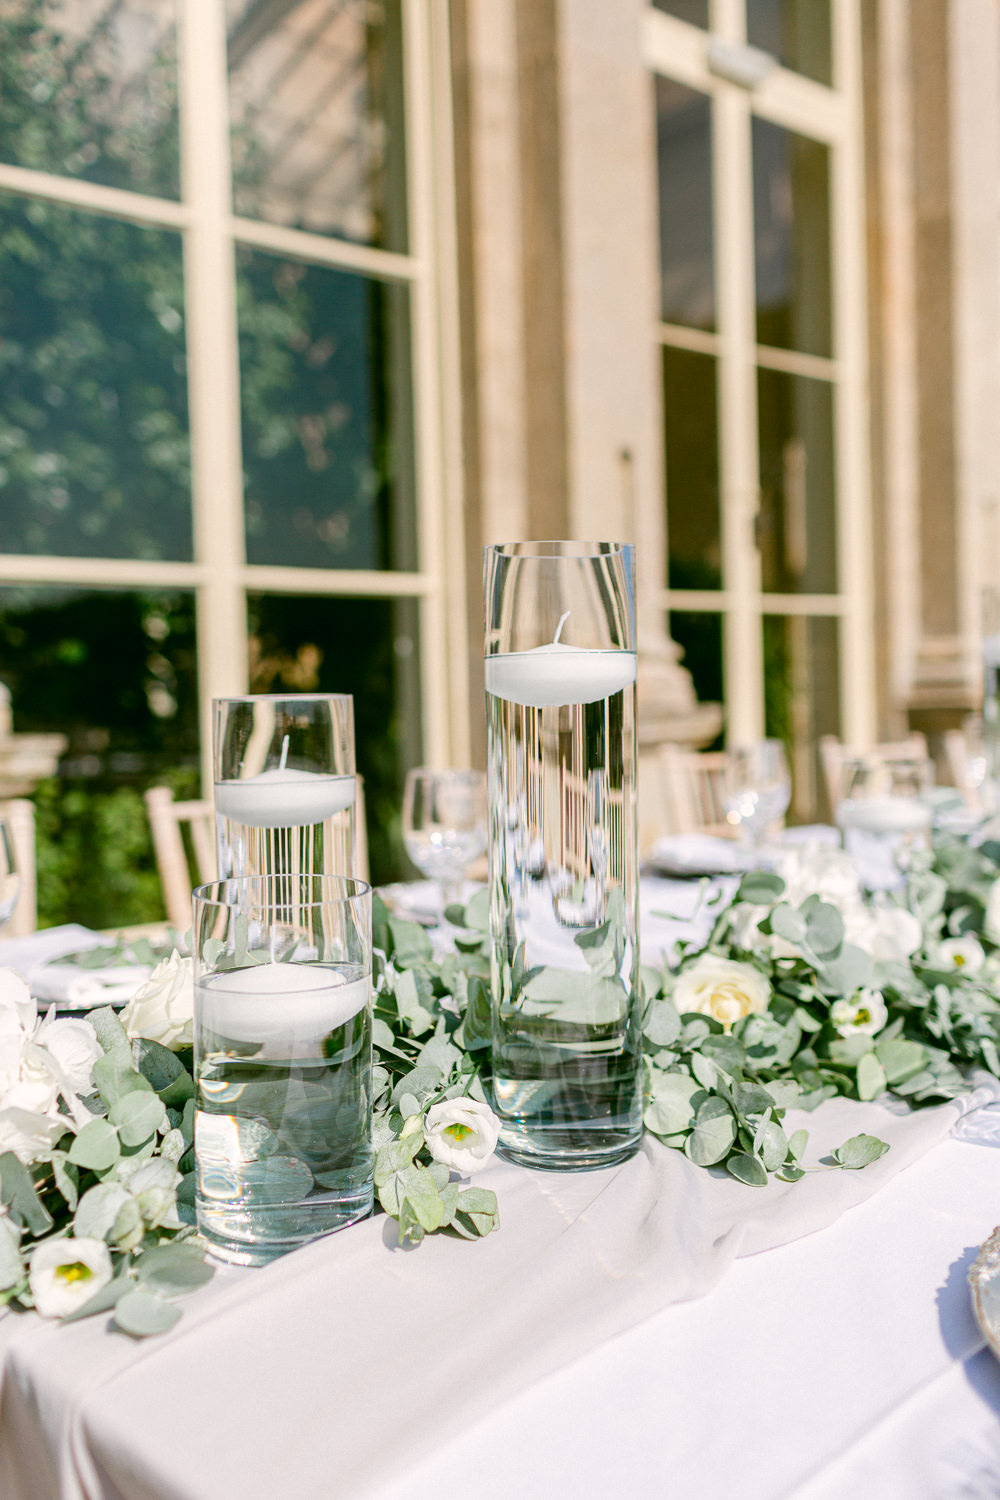 Table Tablescape Decor Greenery Foliage Runner Place Setting Water Candles Stately Home Wedding Whitney Lloyd Photography